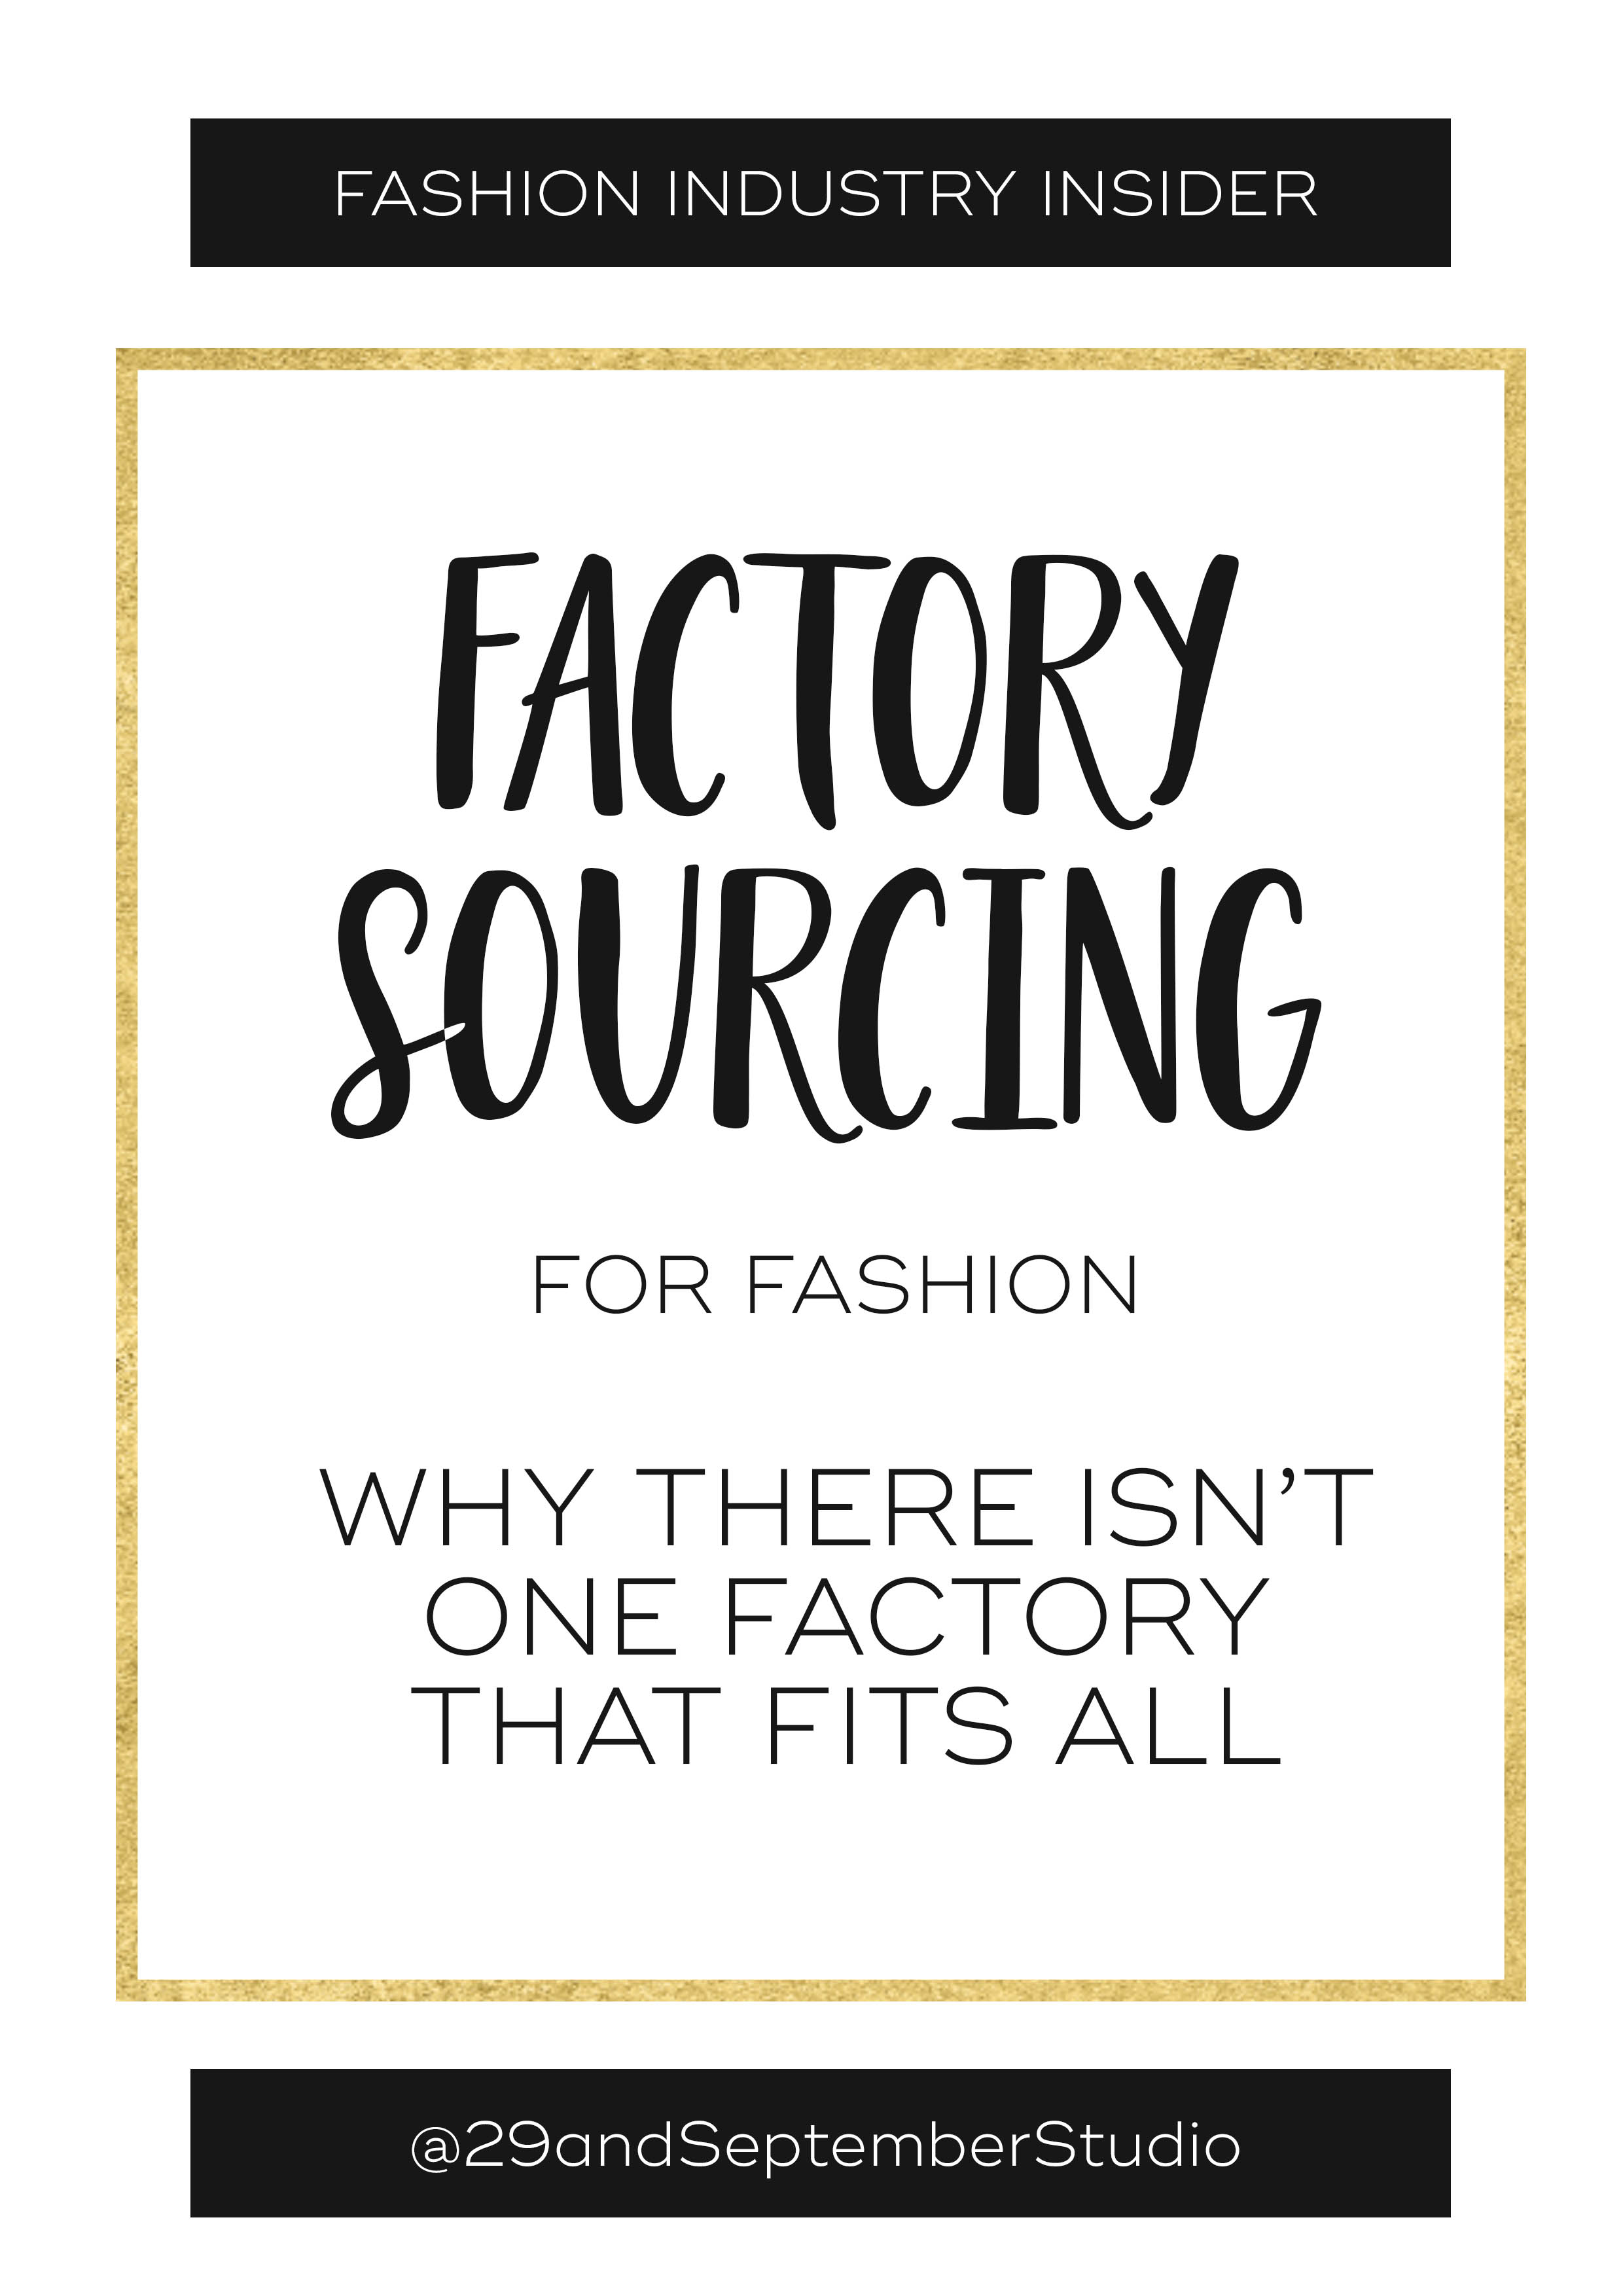 Sourcing manufacturers for fashion; why there isn't one factory to fit all